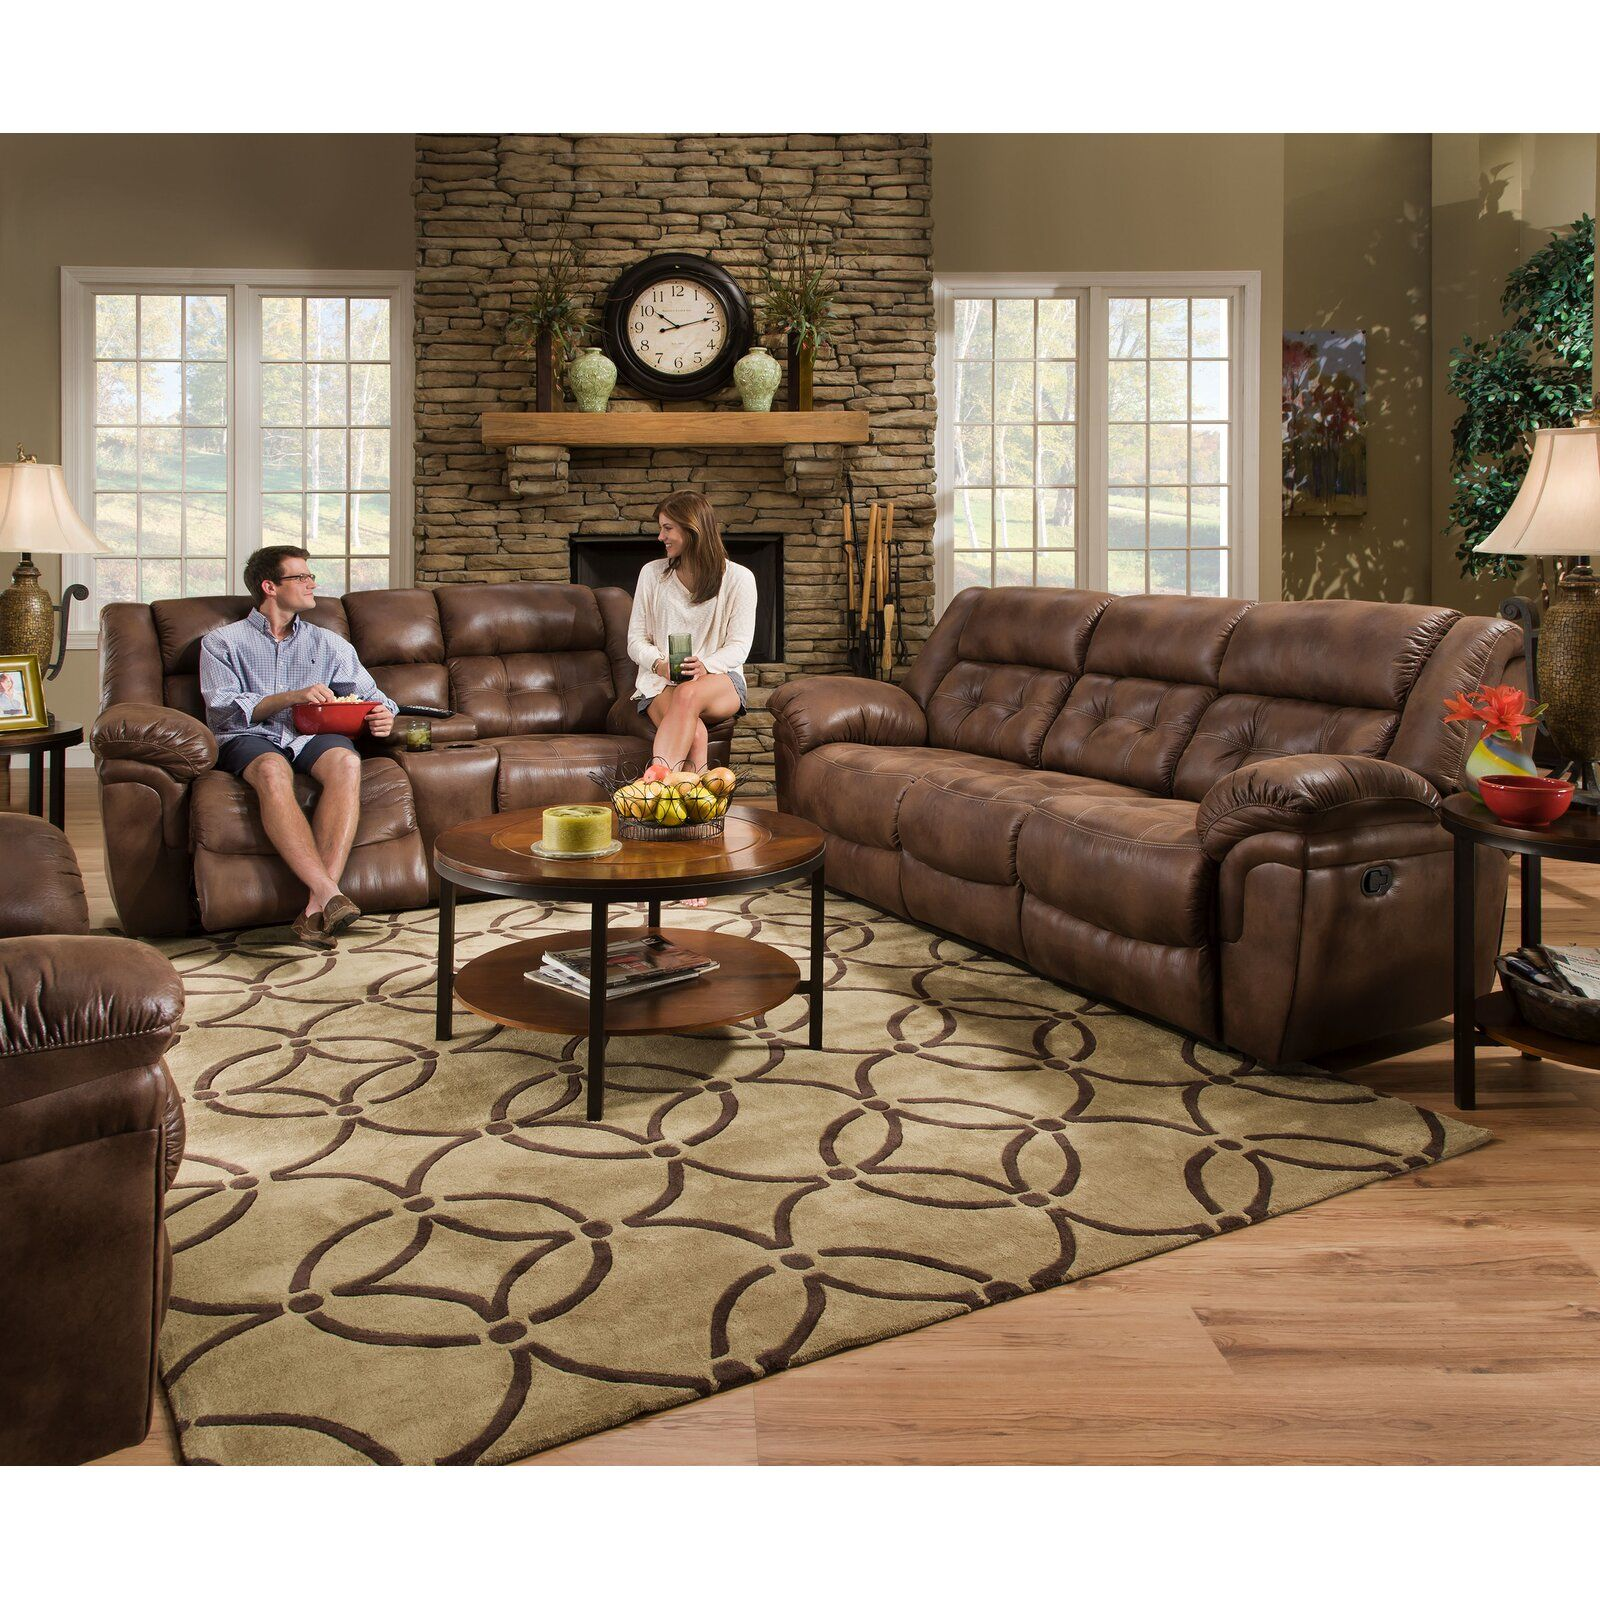 Hanna Reclining Configurable Living Room Set in 2019 | 3 ... on Outdoor Living Room Set id=82773